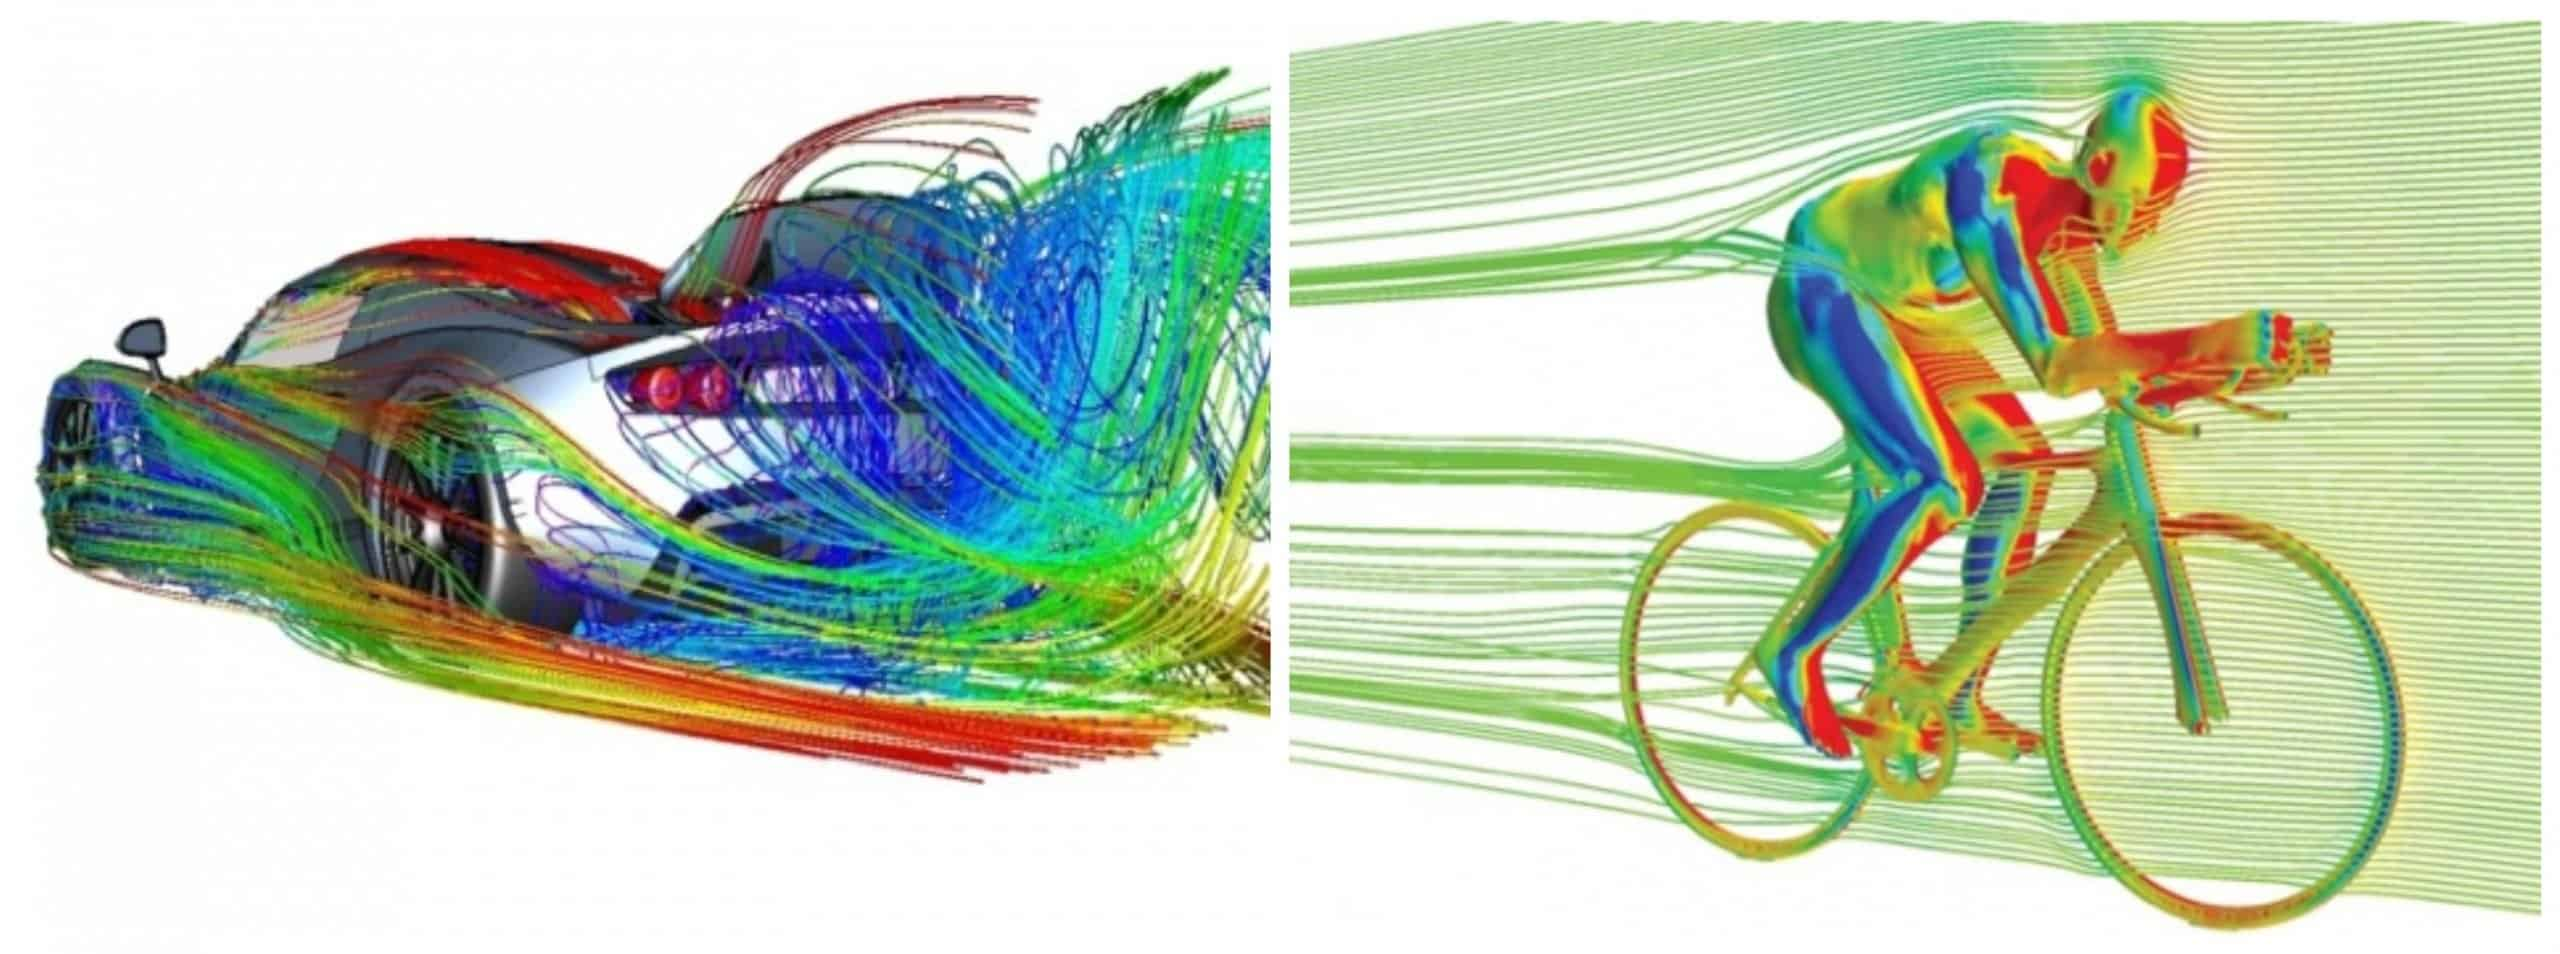 Aerodynamics CFD scaled